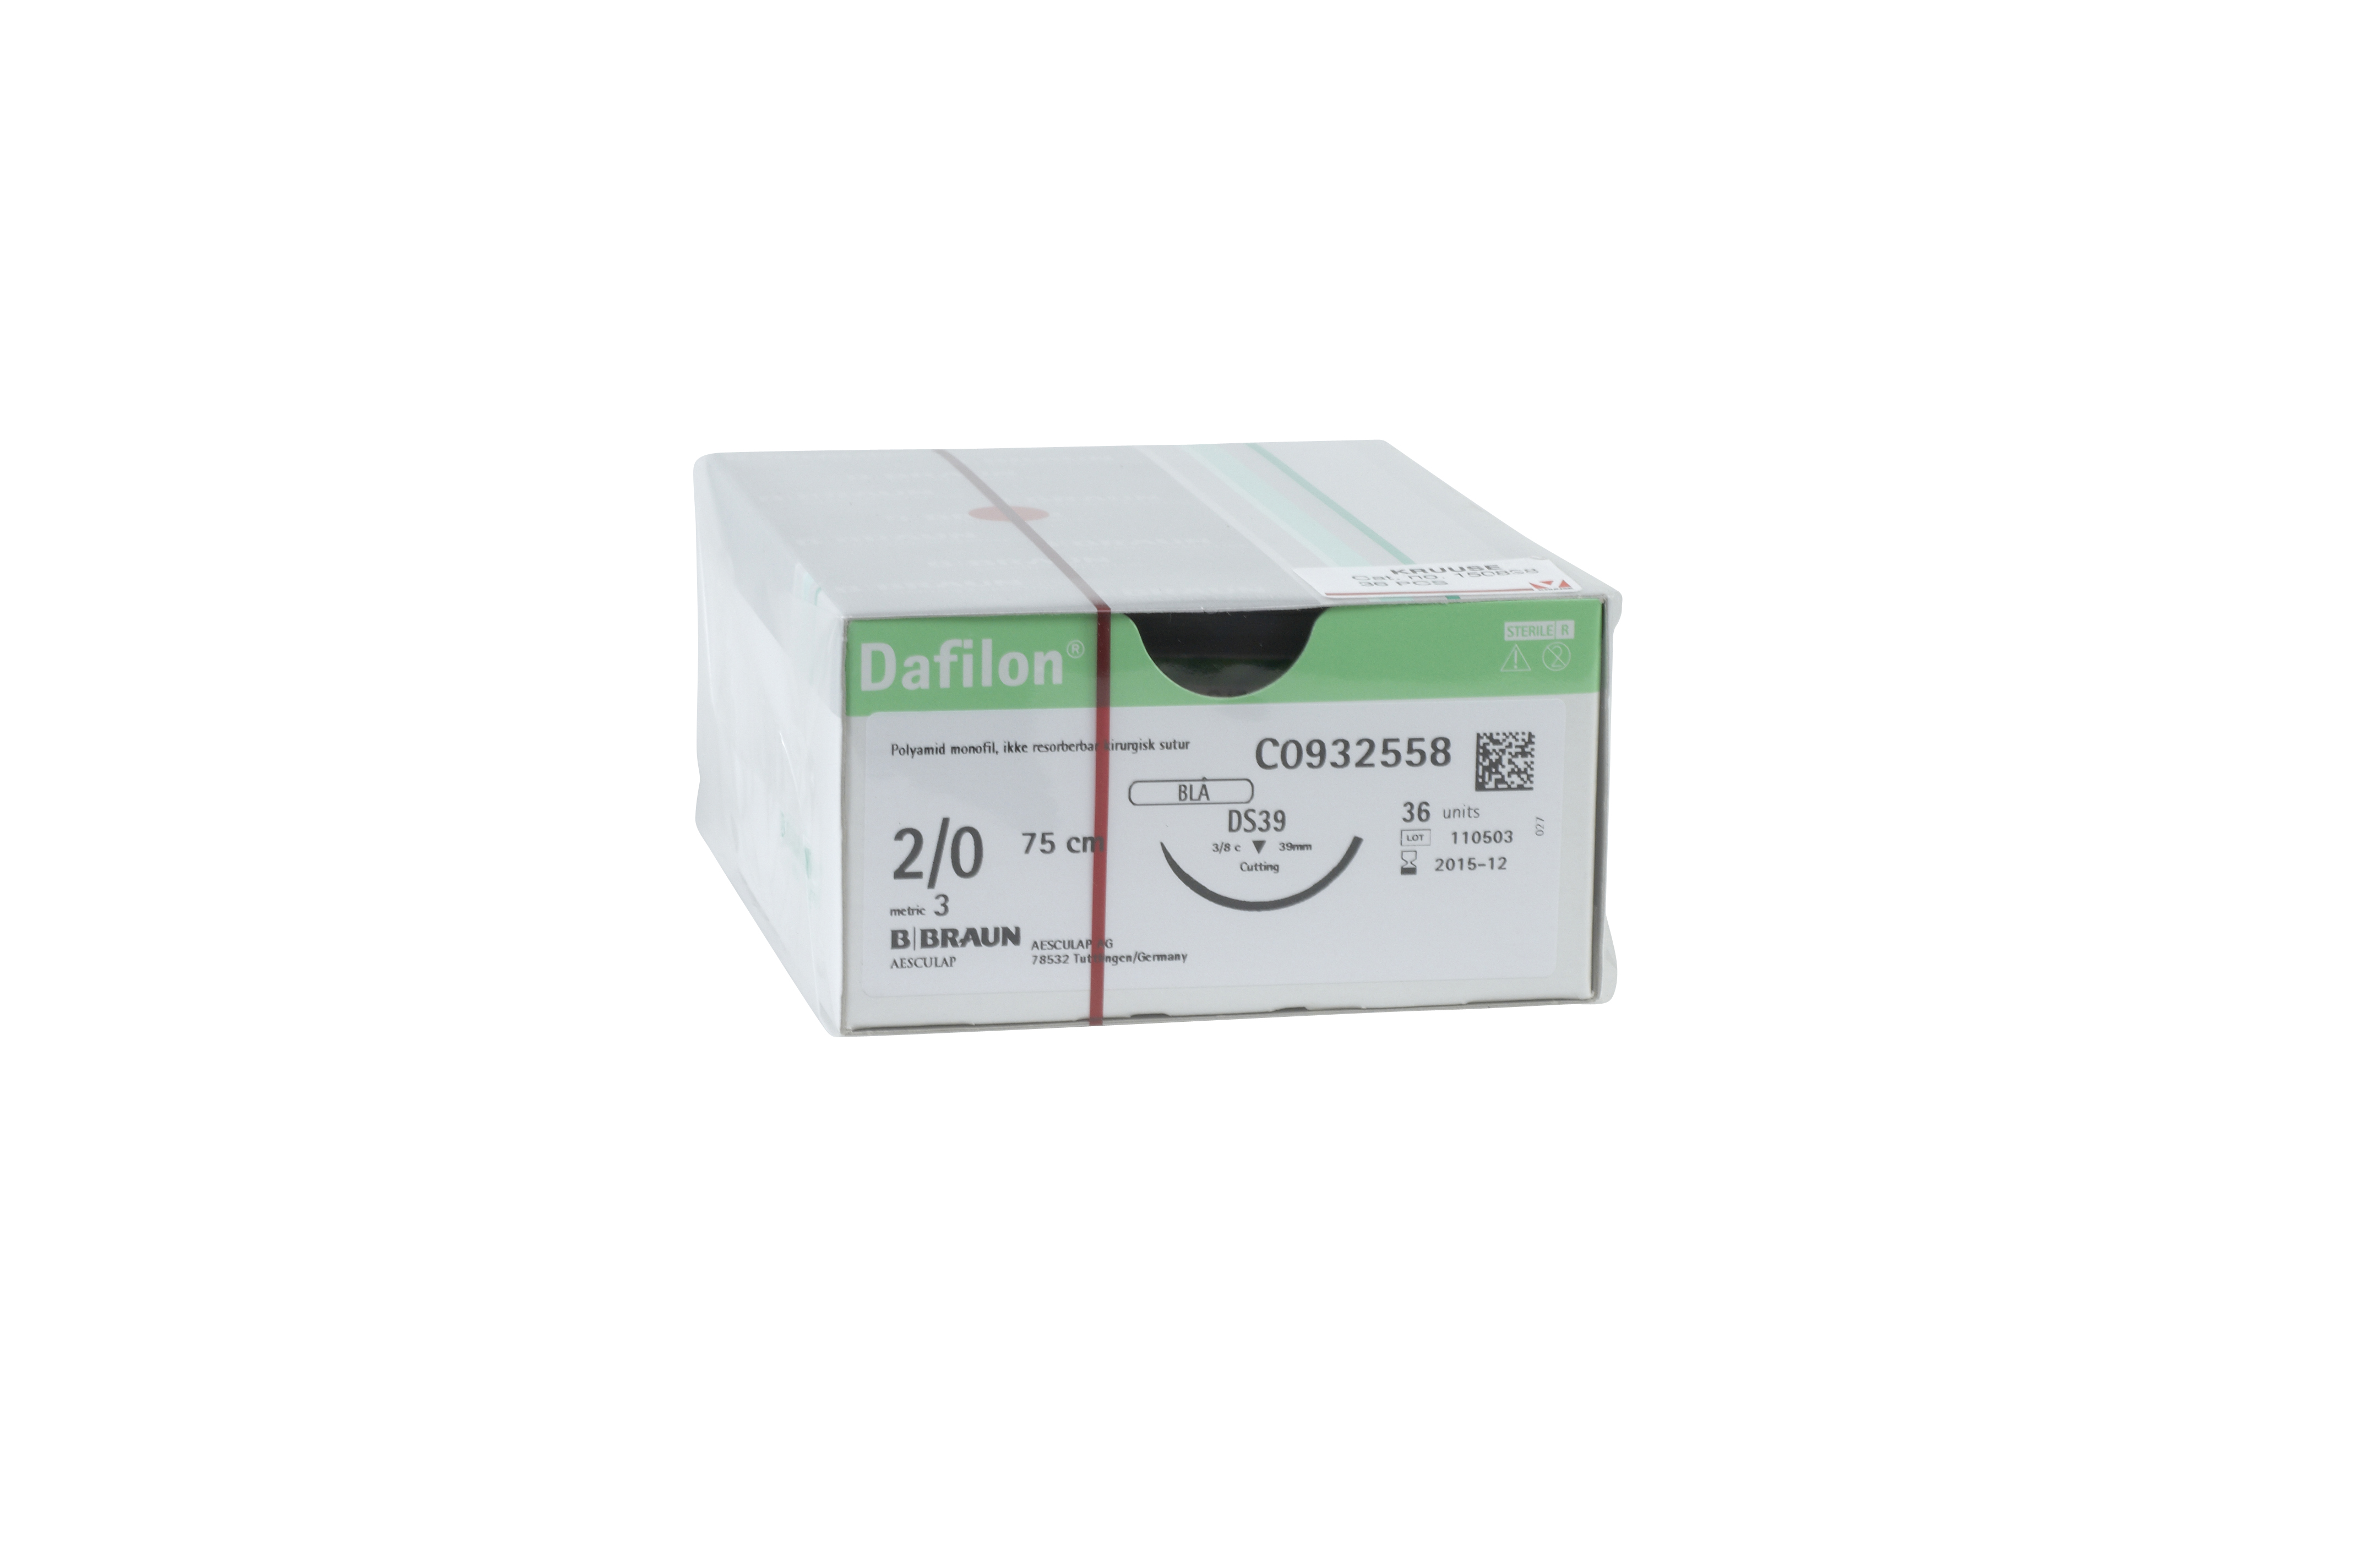 Dafilon USP 2/0, DS-30 C0935476, only sold as 36/pk